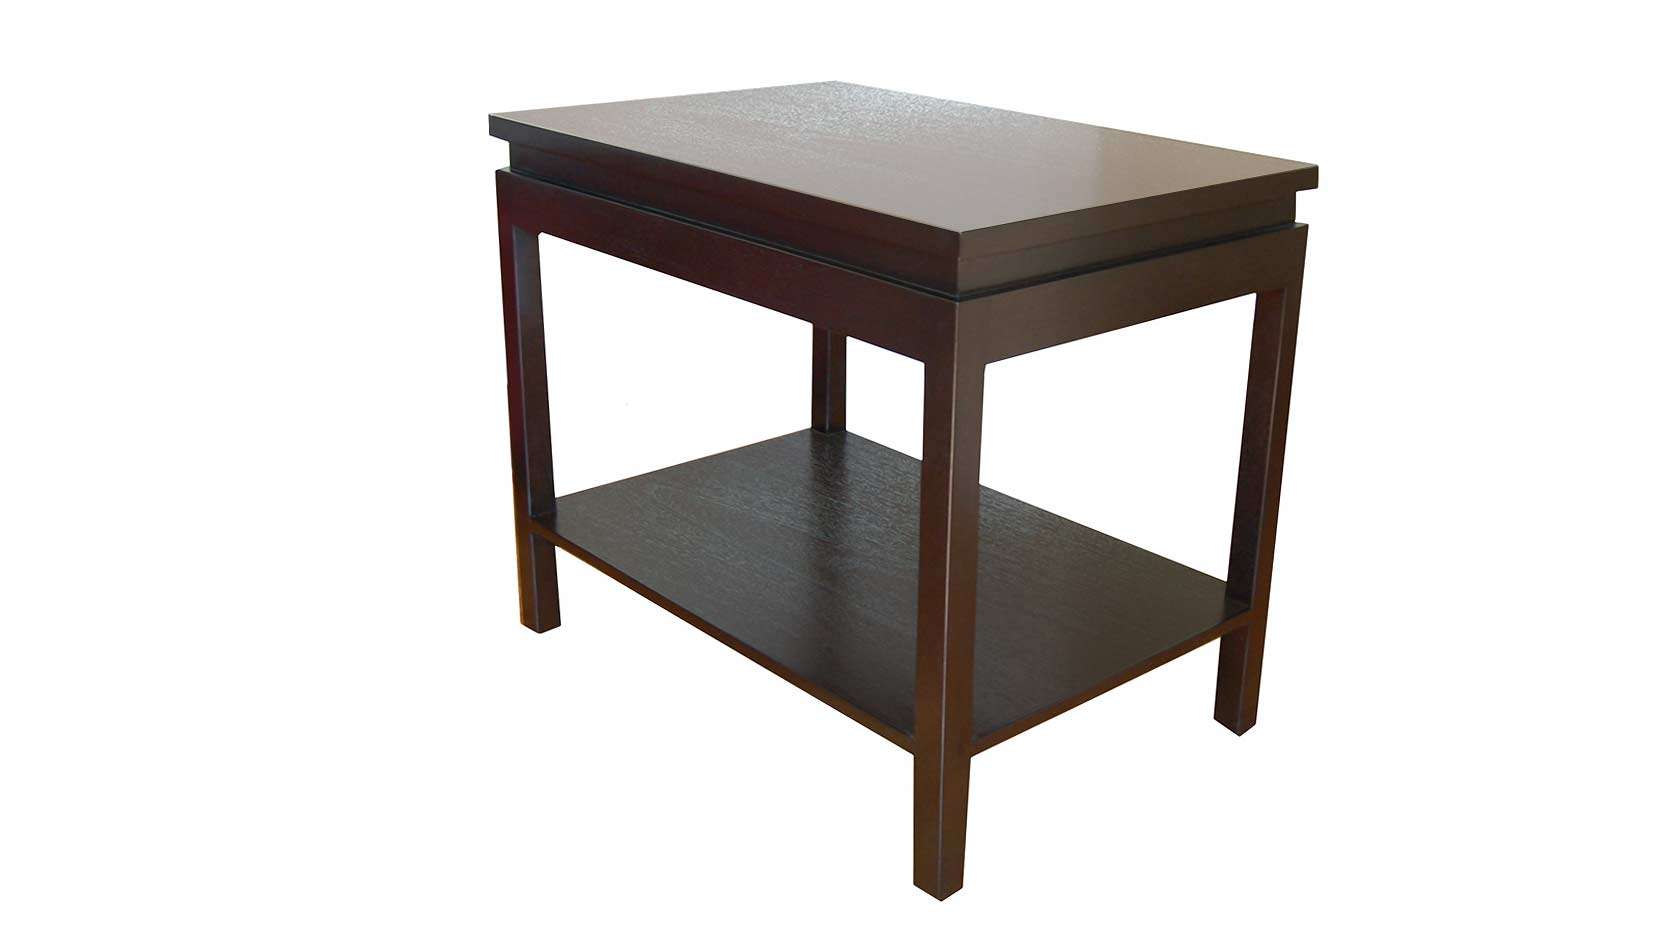 ming rectangular end table with shelf